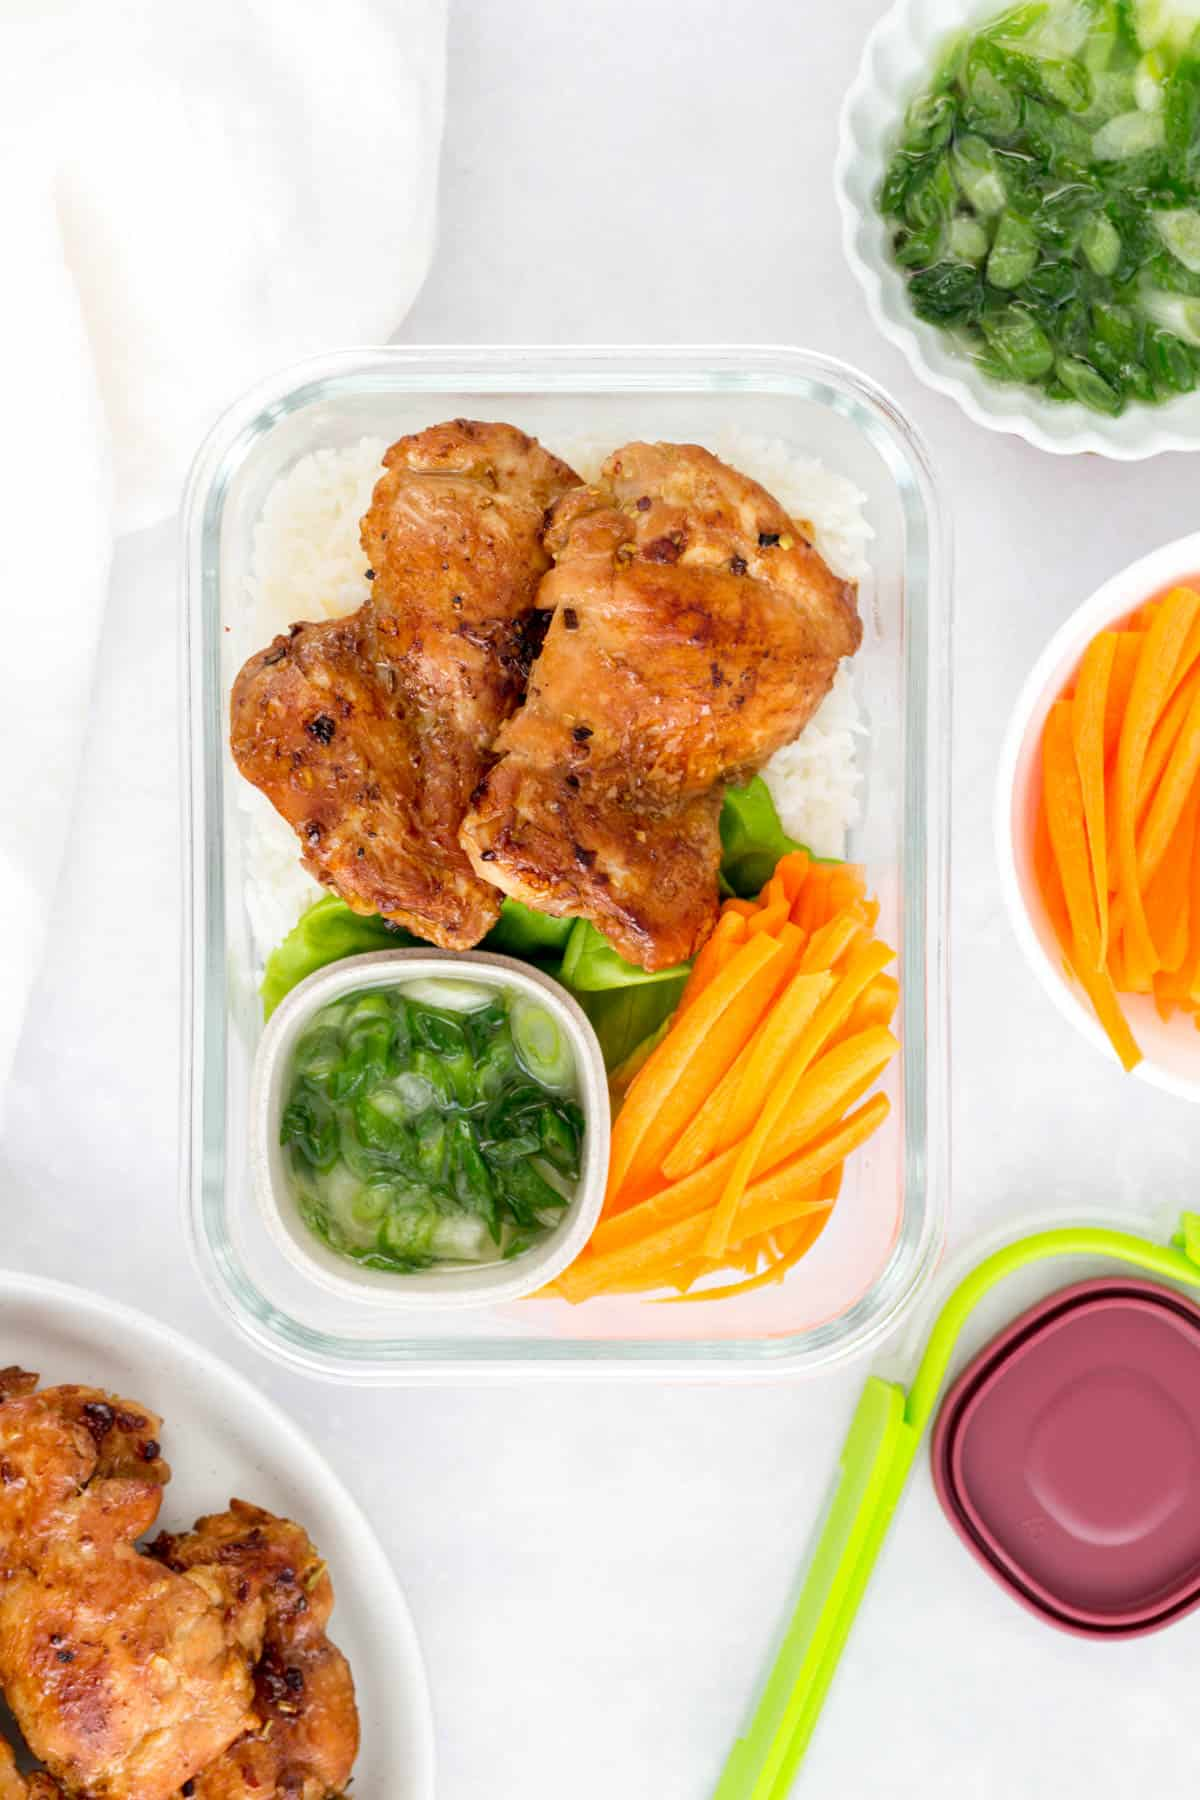 Meal prep container with rice, lemongrass chicken, lettuce, carrots, and scallion sauce.